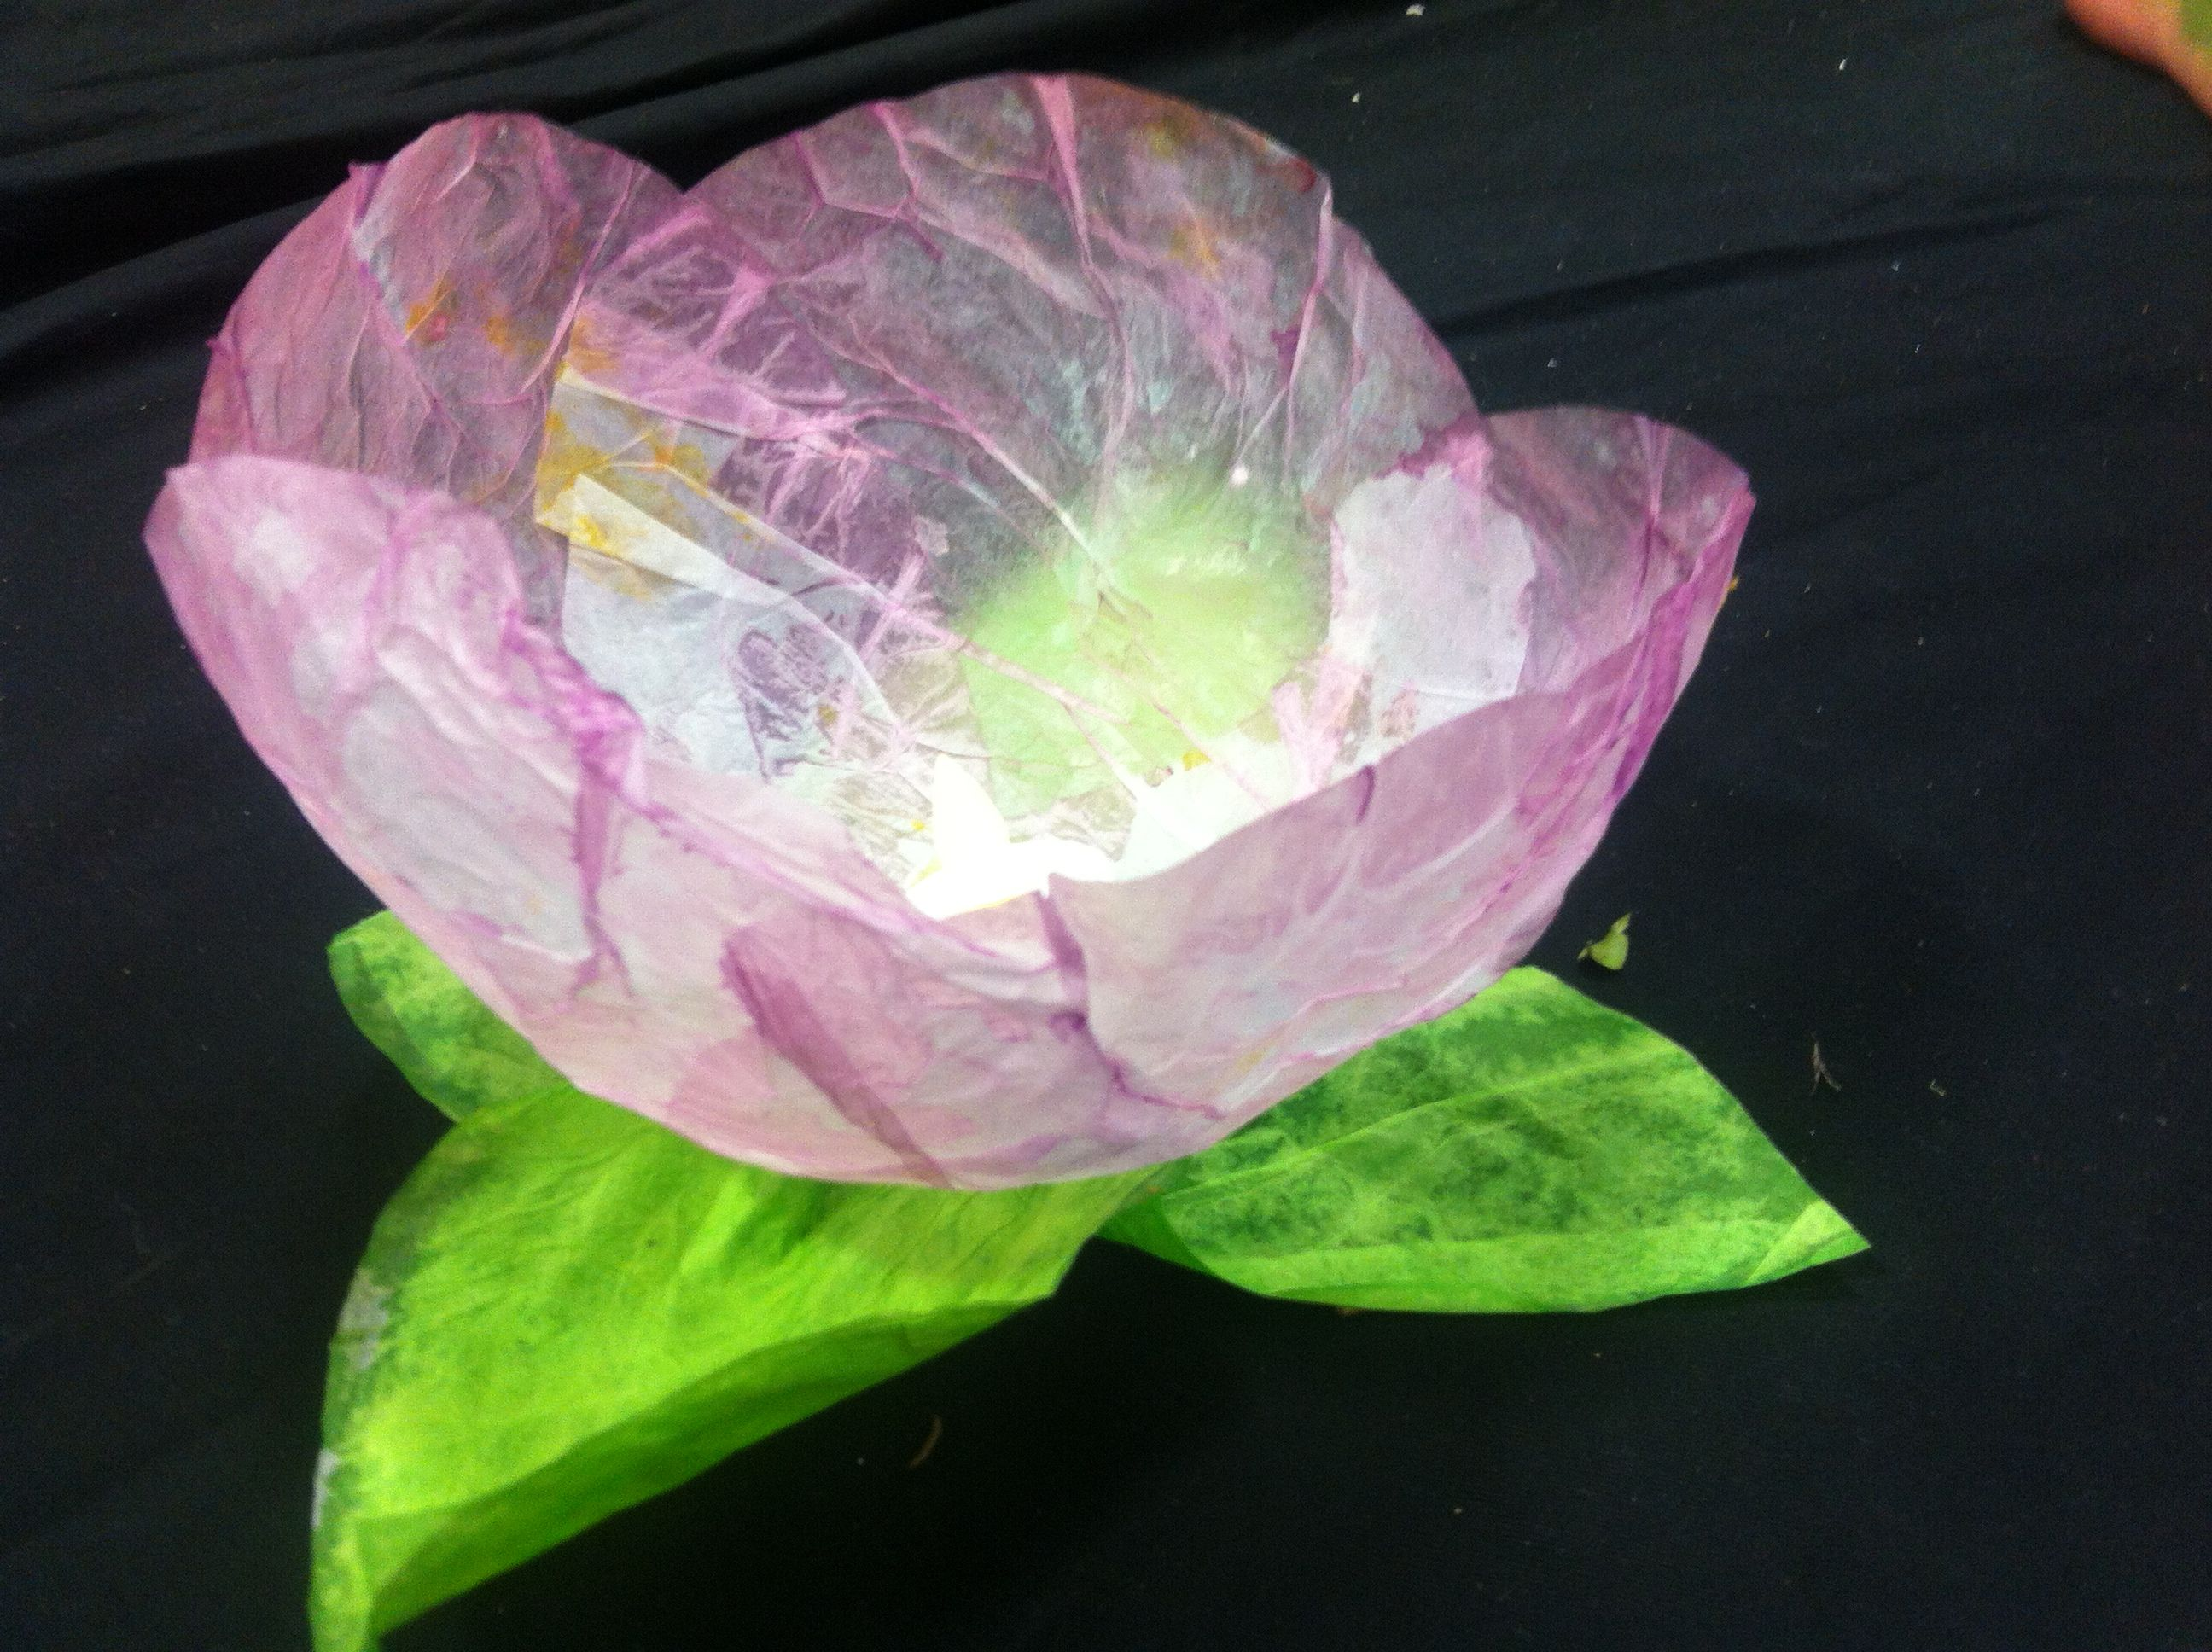 Tissue Paper Flower Lantern Made Over The Top Of A Vaseline Covered